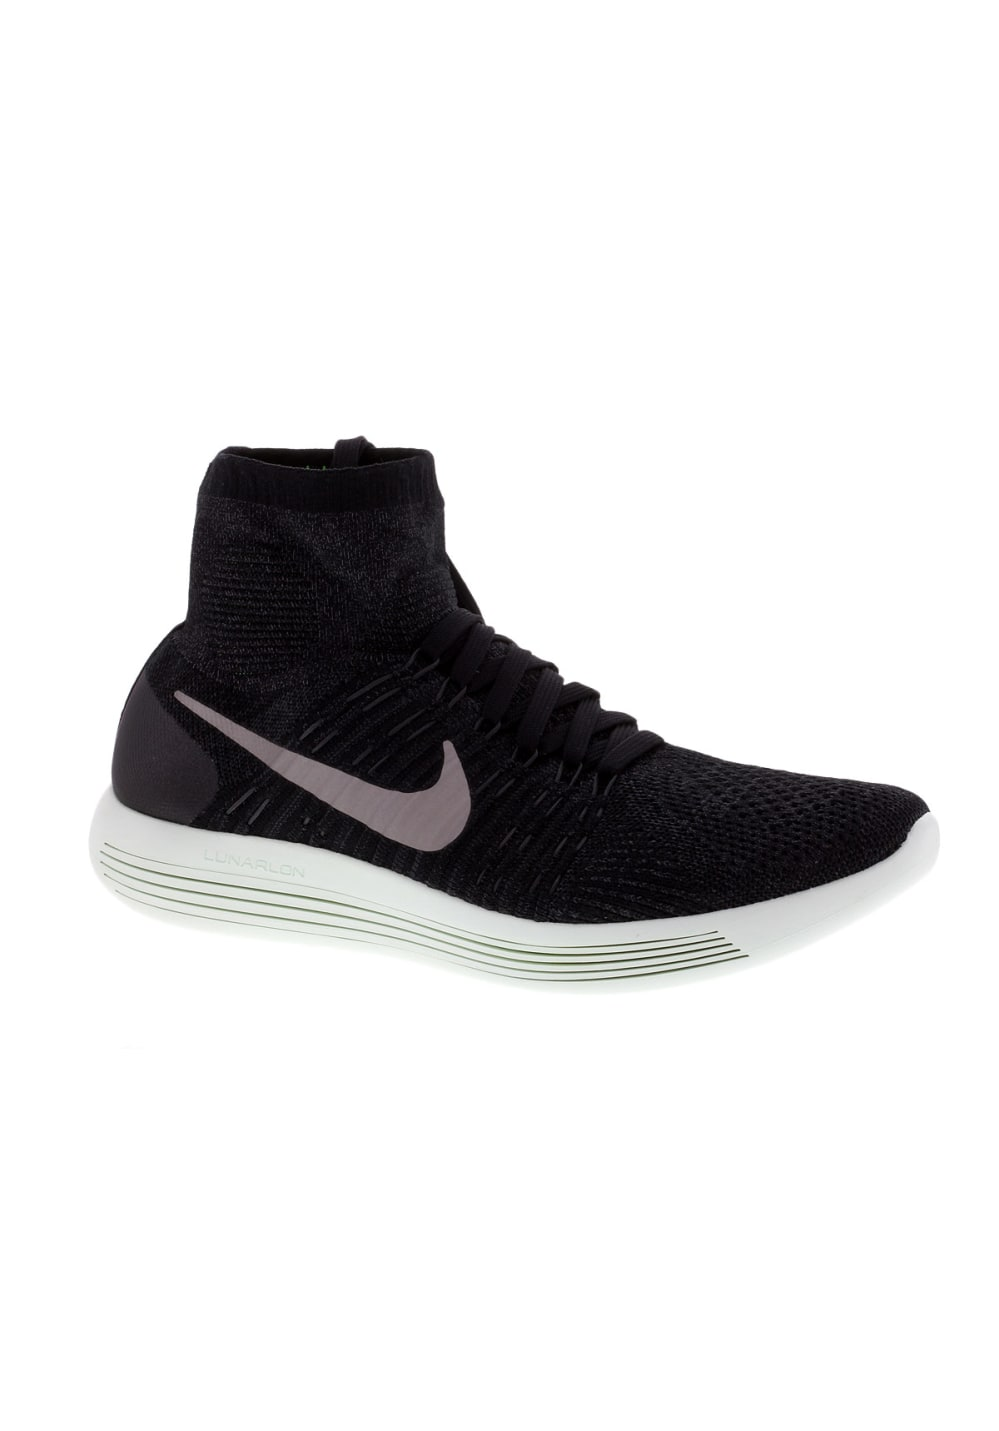 Basket Femme Ride Or Nike Chez Toison D Neutral Jd Yb7gyf6